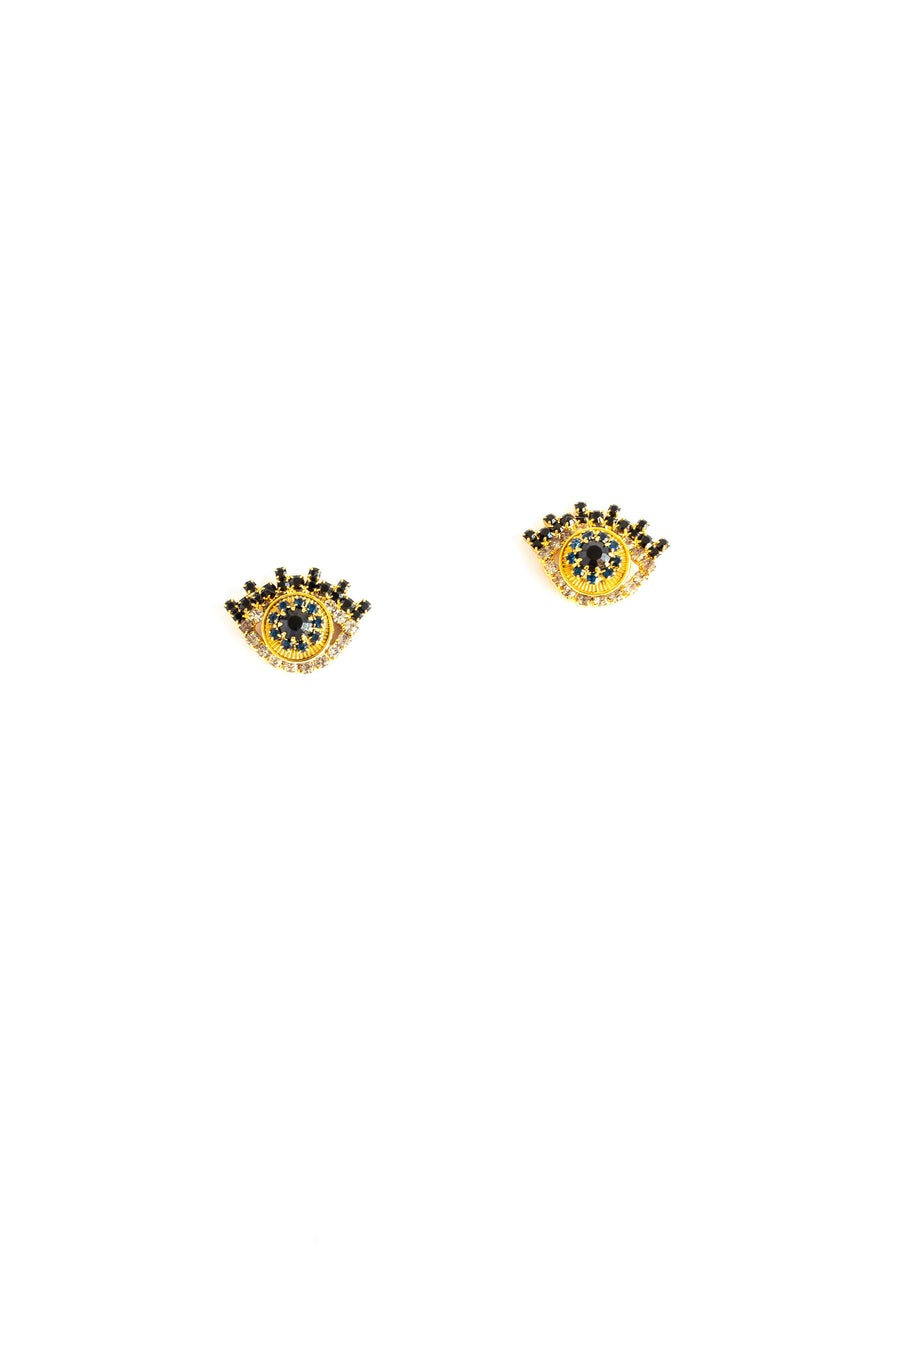 Zoelle Earrings